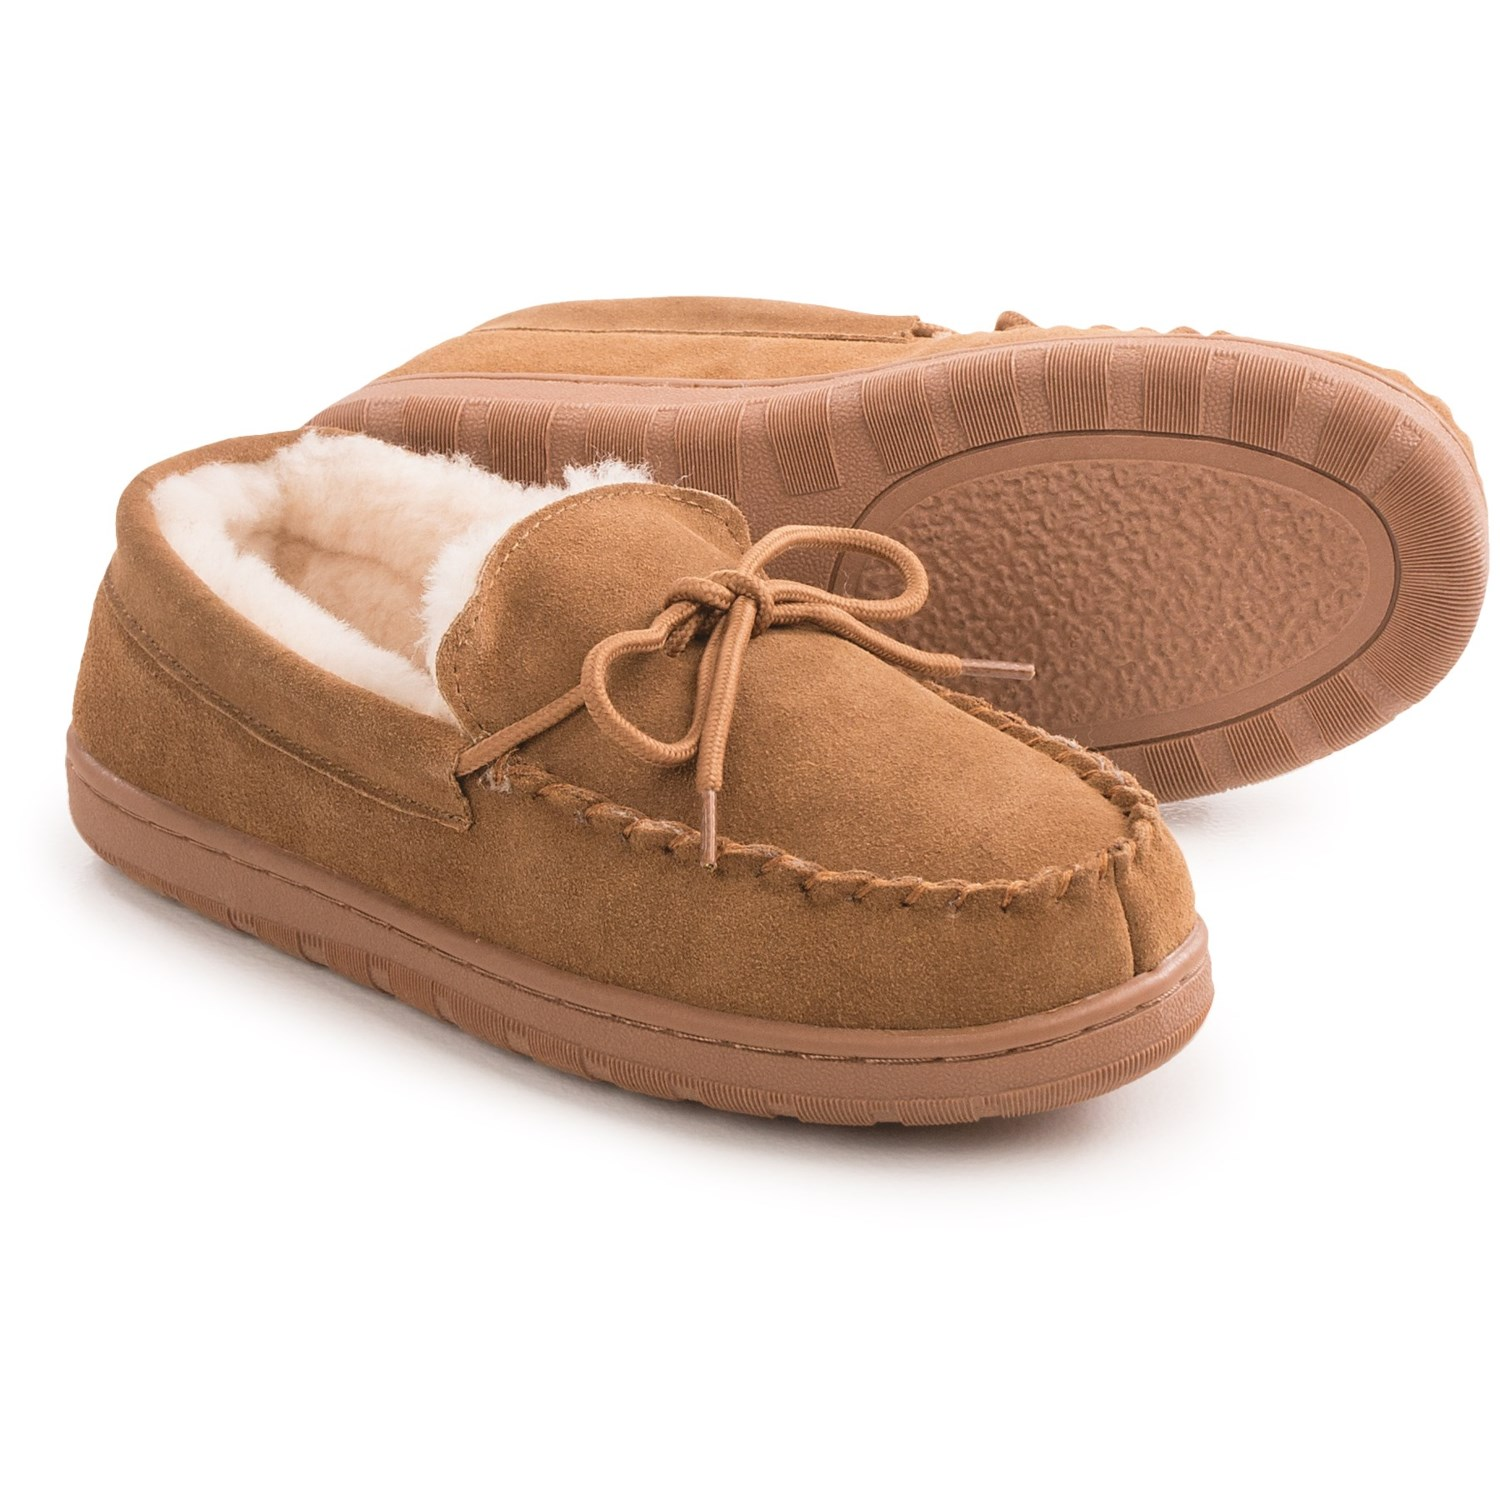 Lamo footwear classic moccasin slippers for women in chestnut